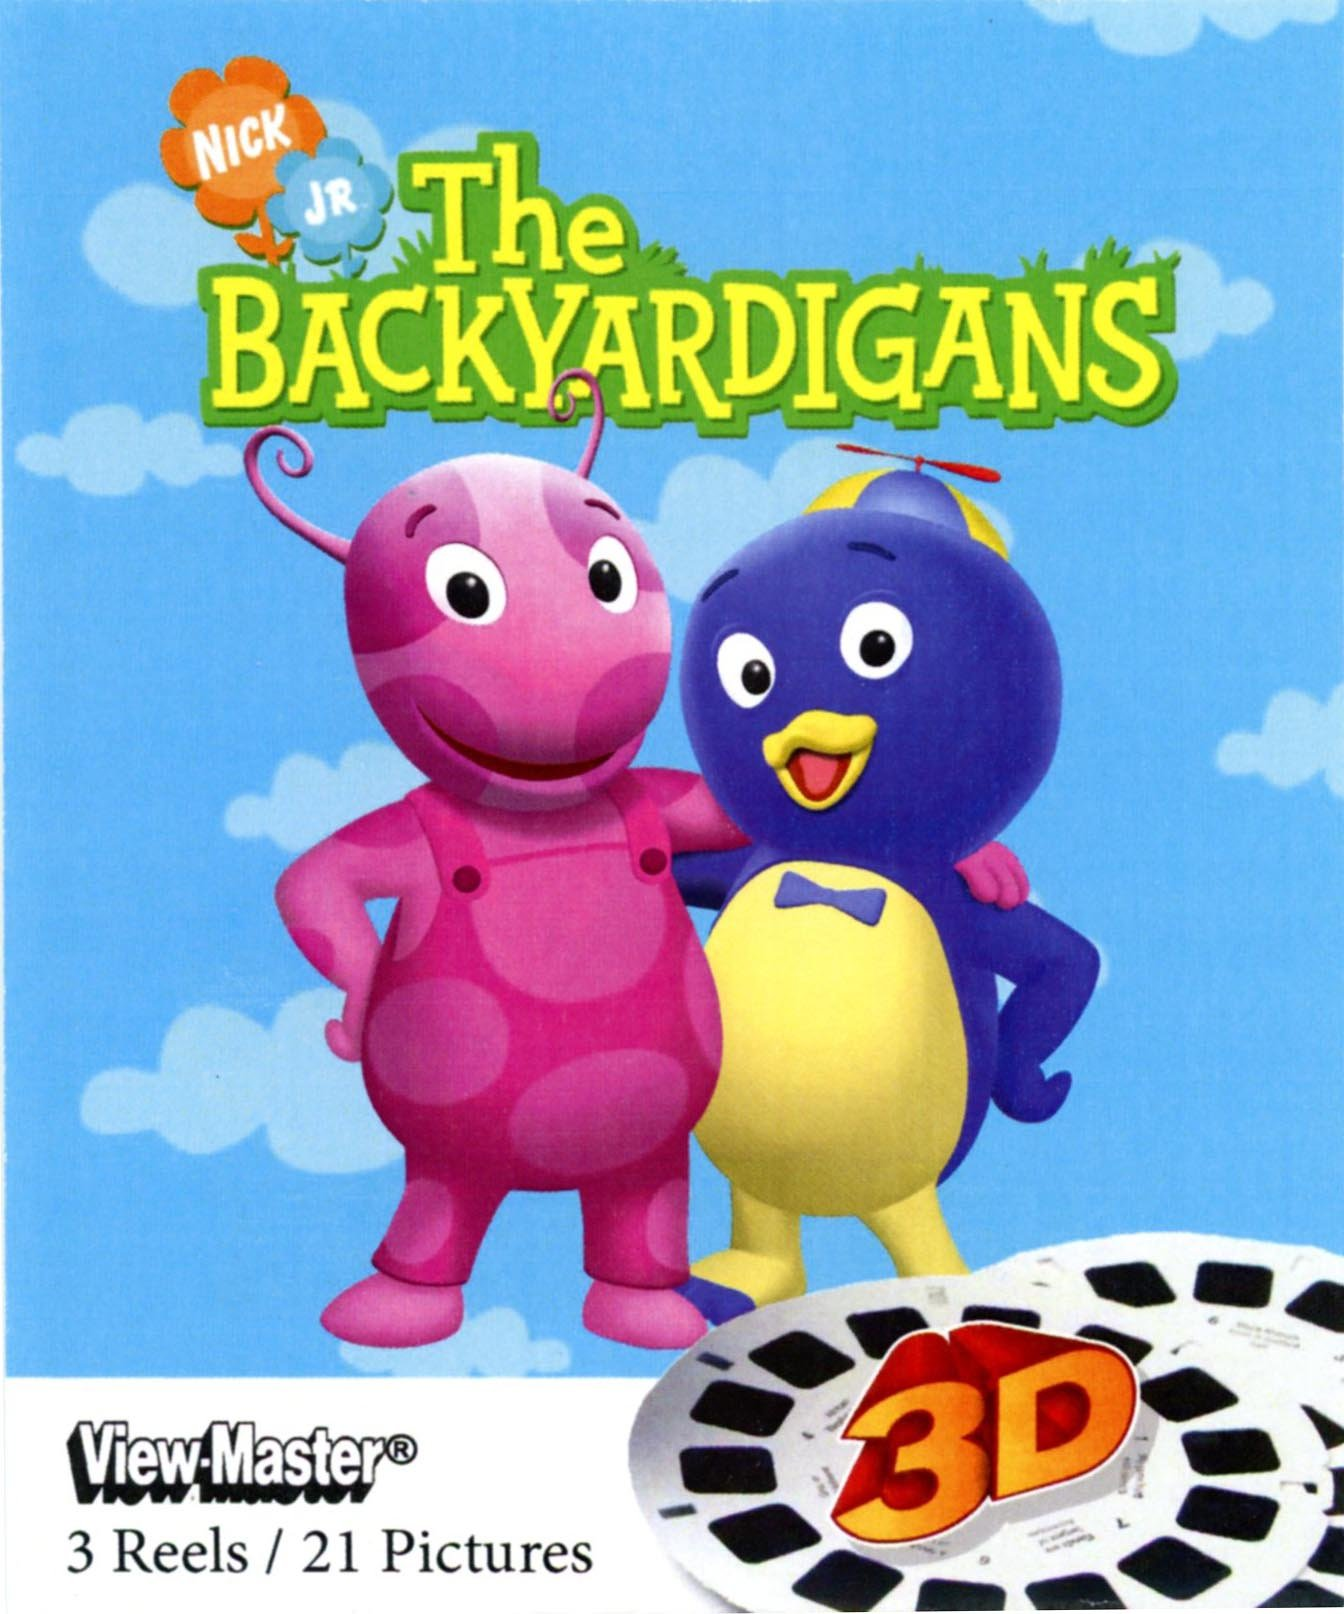 Backyardigans - ViewMaster 3 Reel Set by View Master (Image #1)